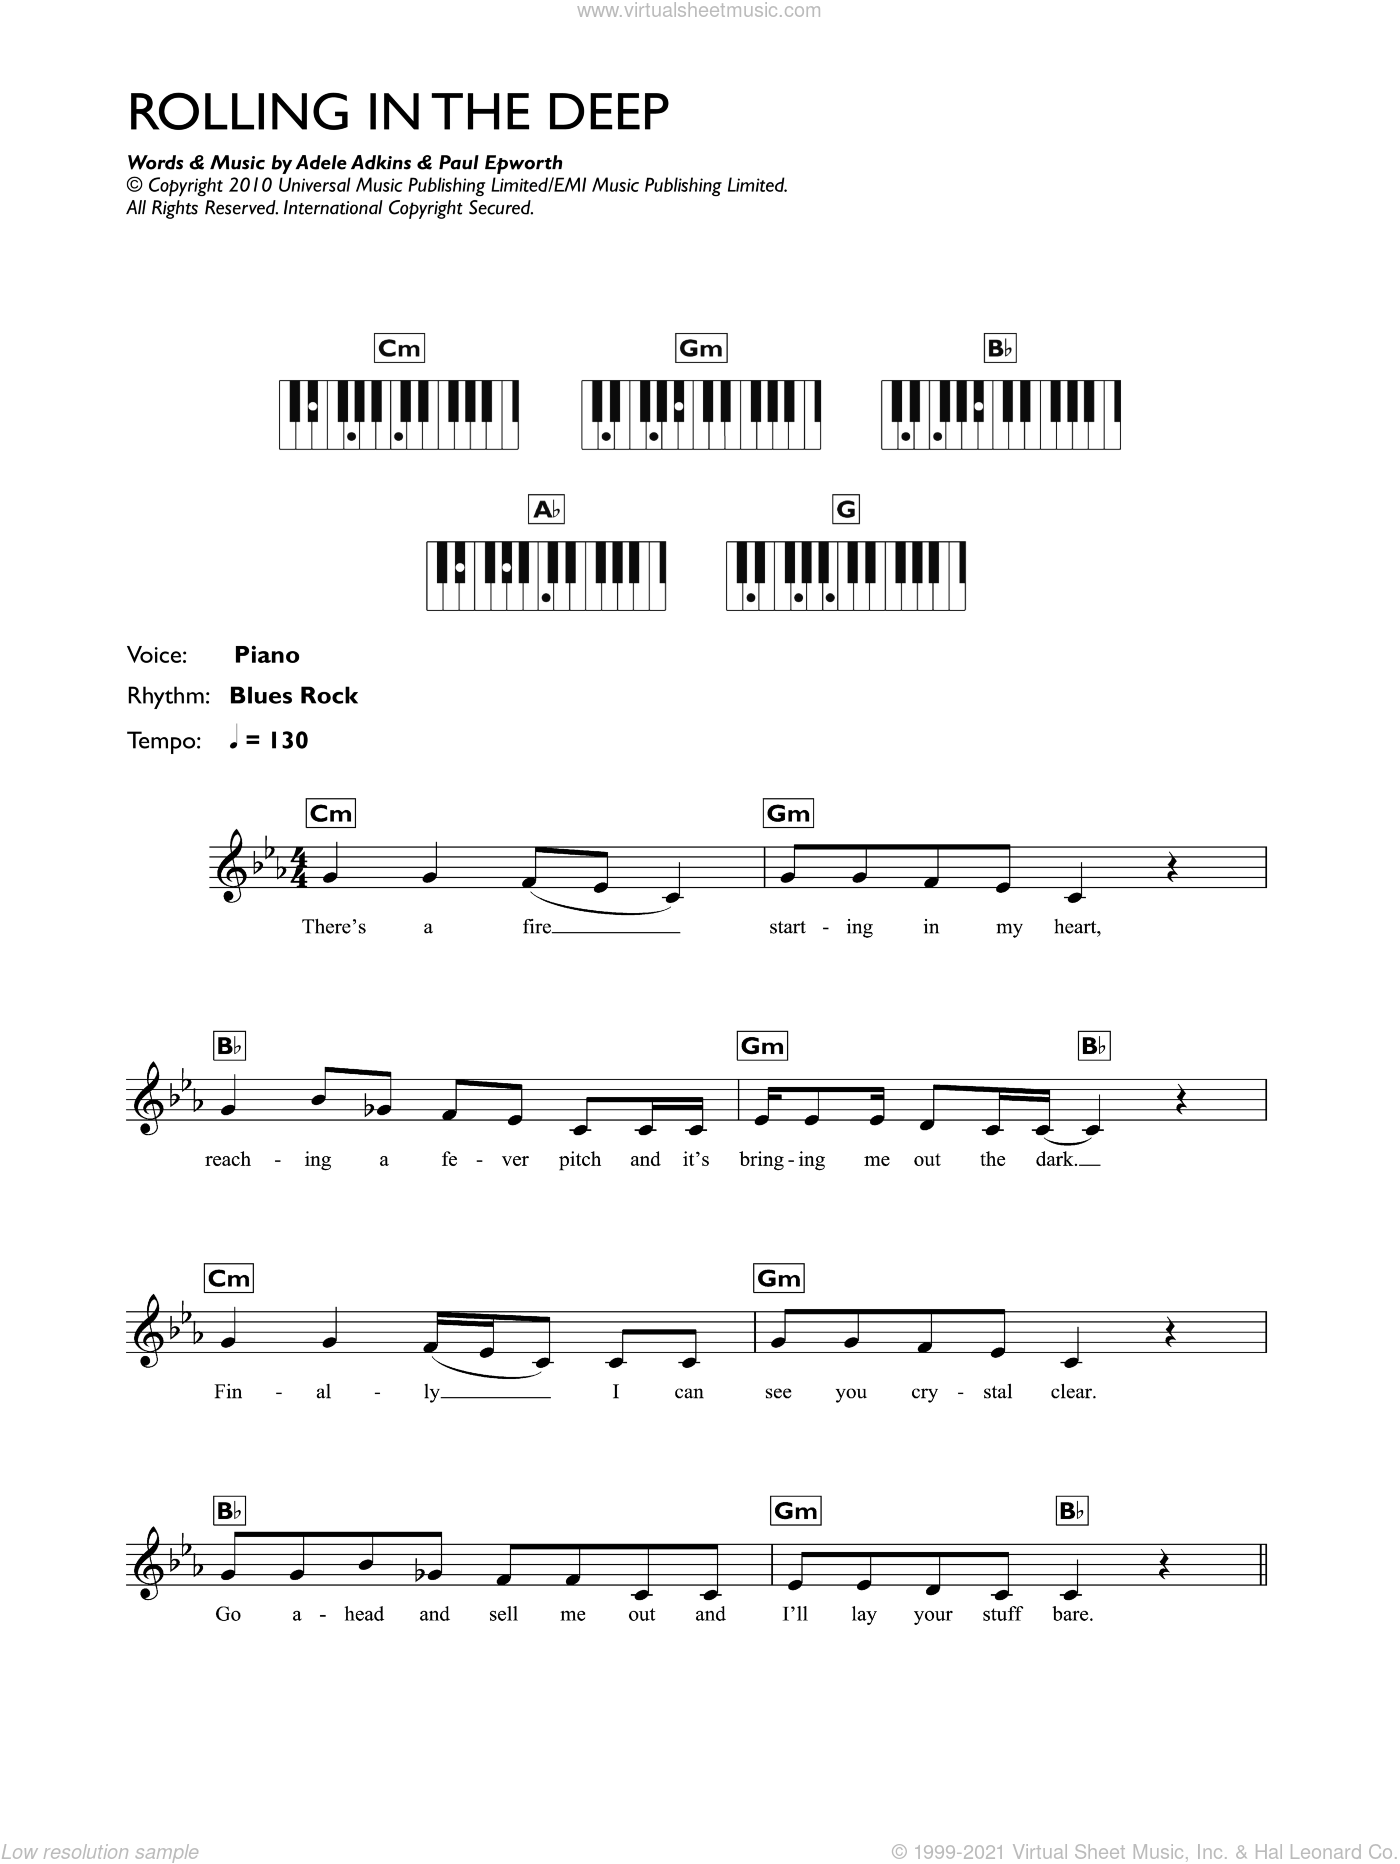 Rolling In The Deep sheet music for piano solo (chords, lyrics, melody) by Paul Epworth